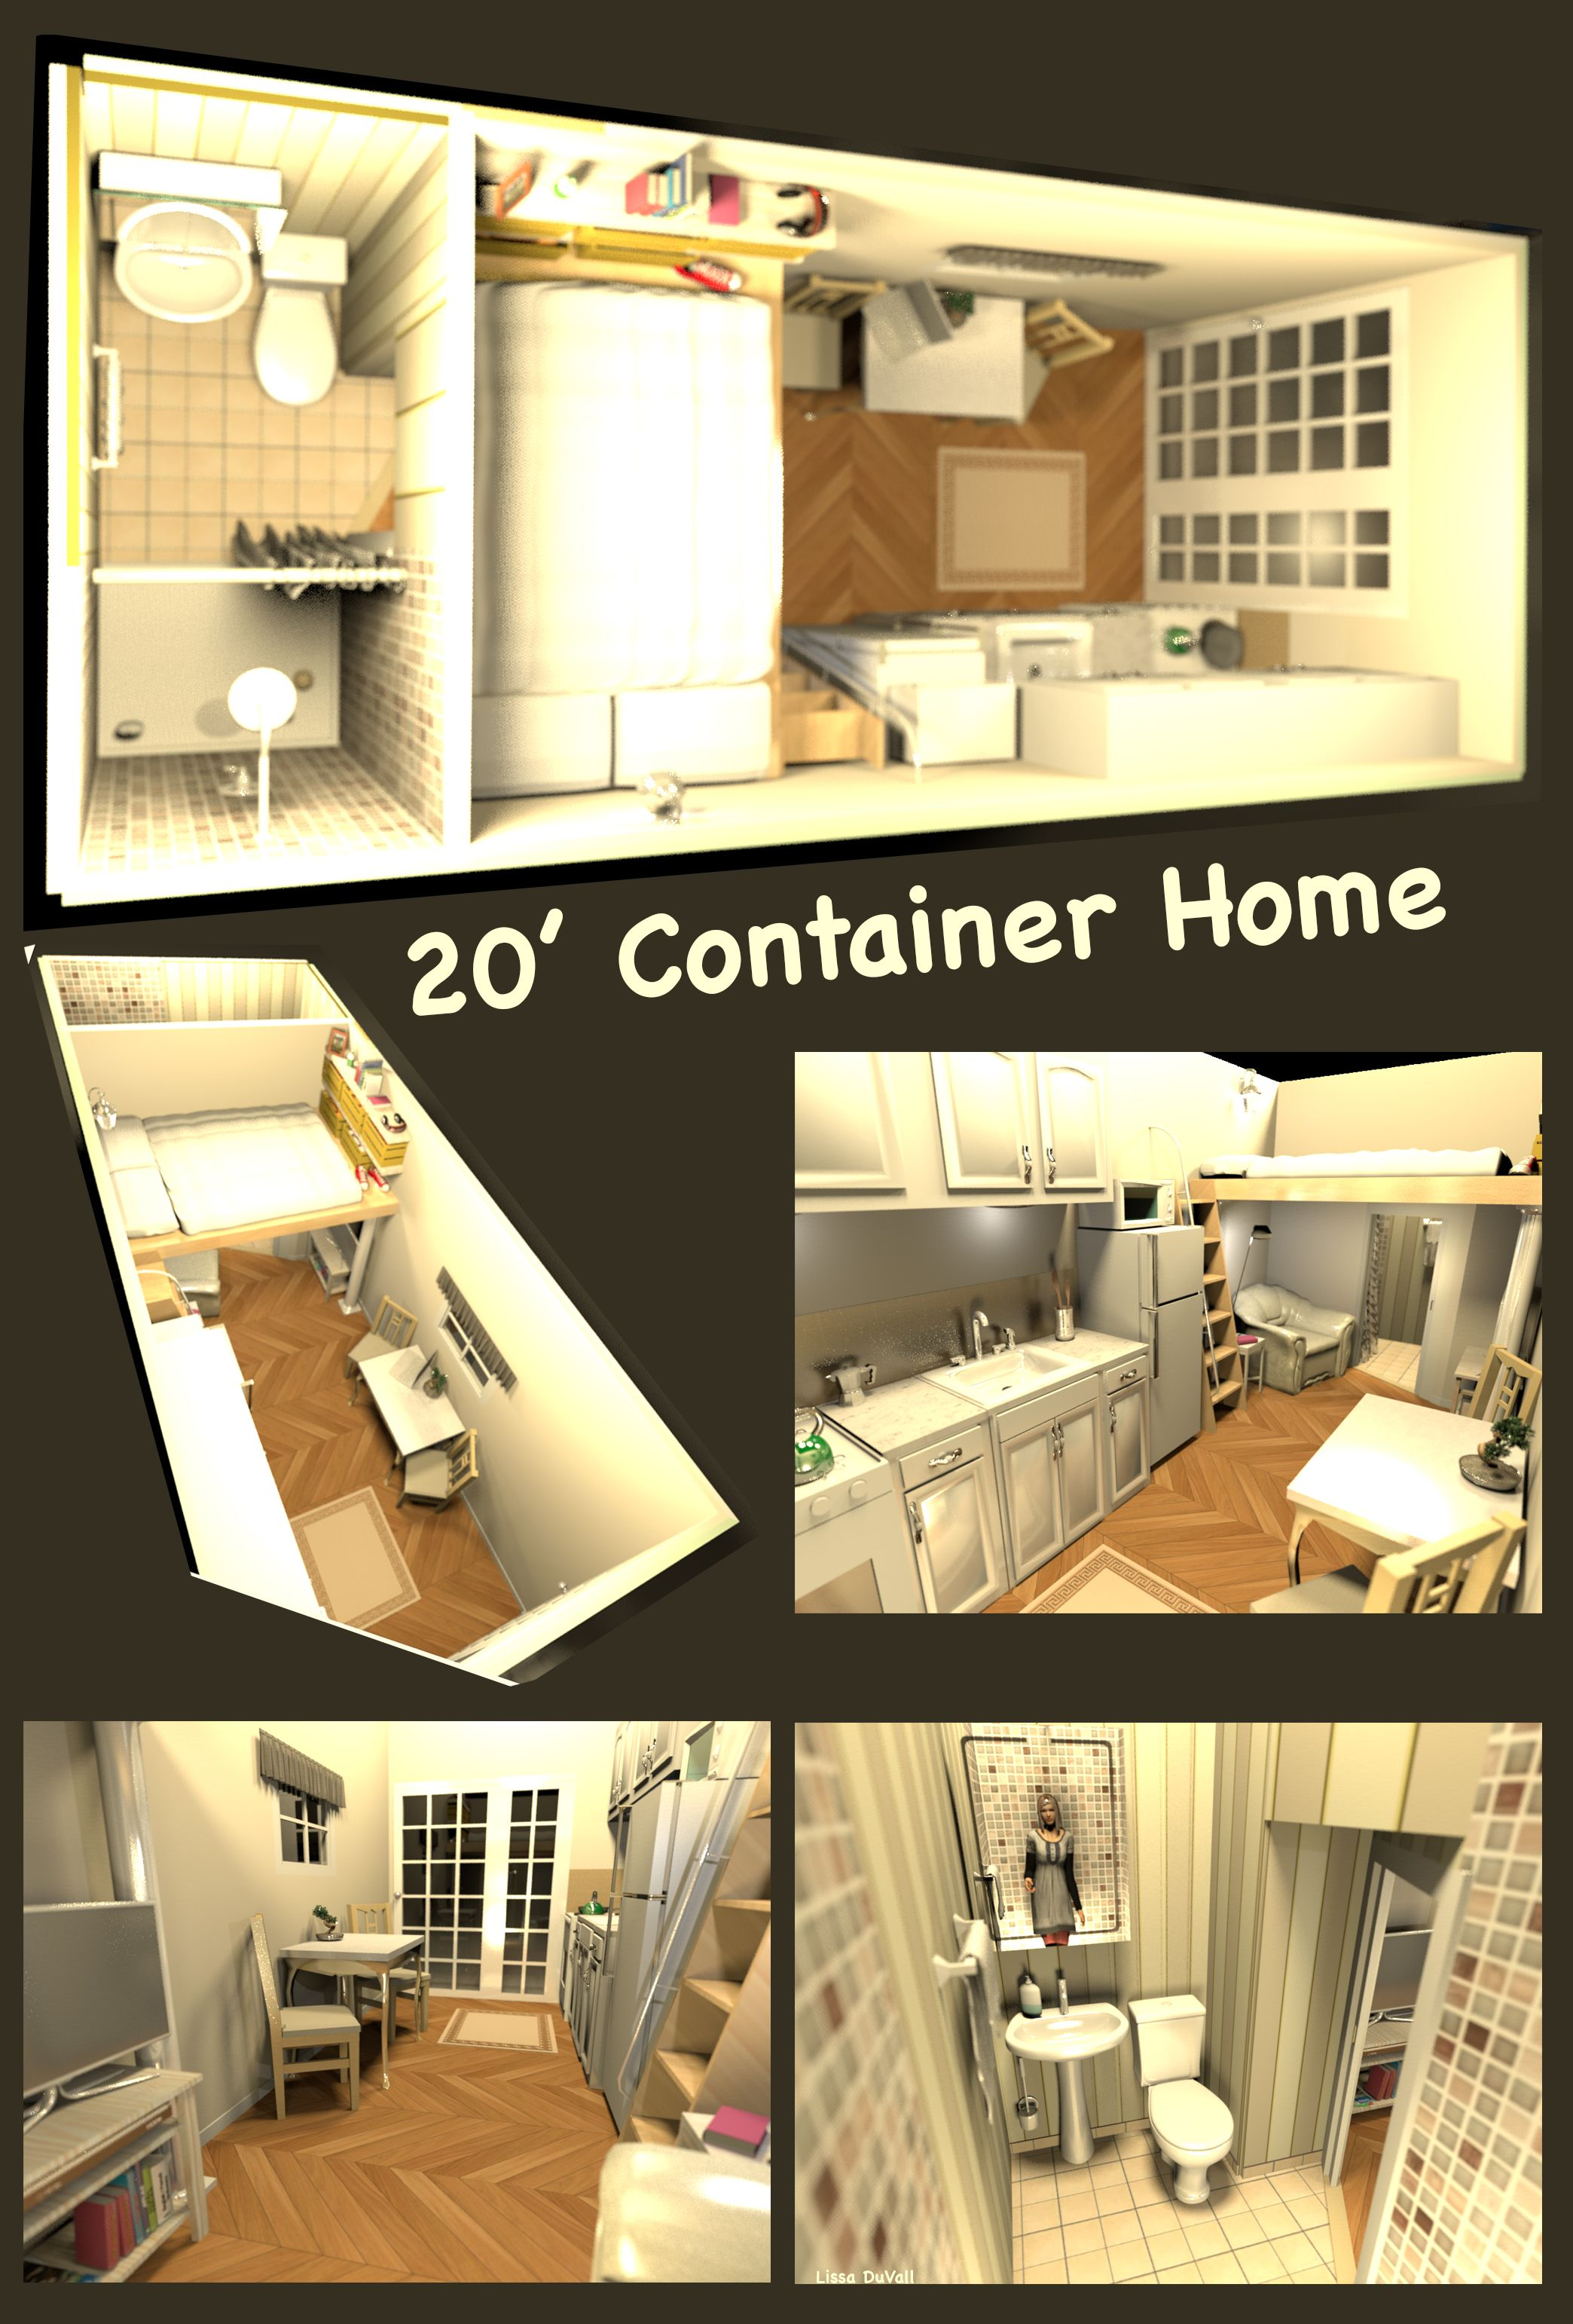 20 X8 Container Home Full Size Bed A Very Space Efficient Floor Plan For A Container Home C Container House Container House Design Container House Interior